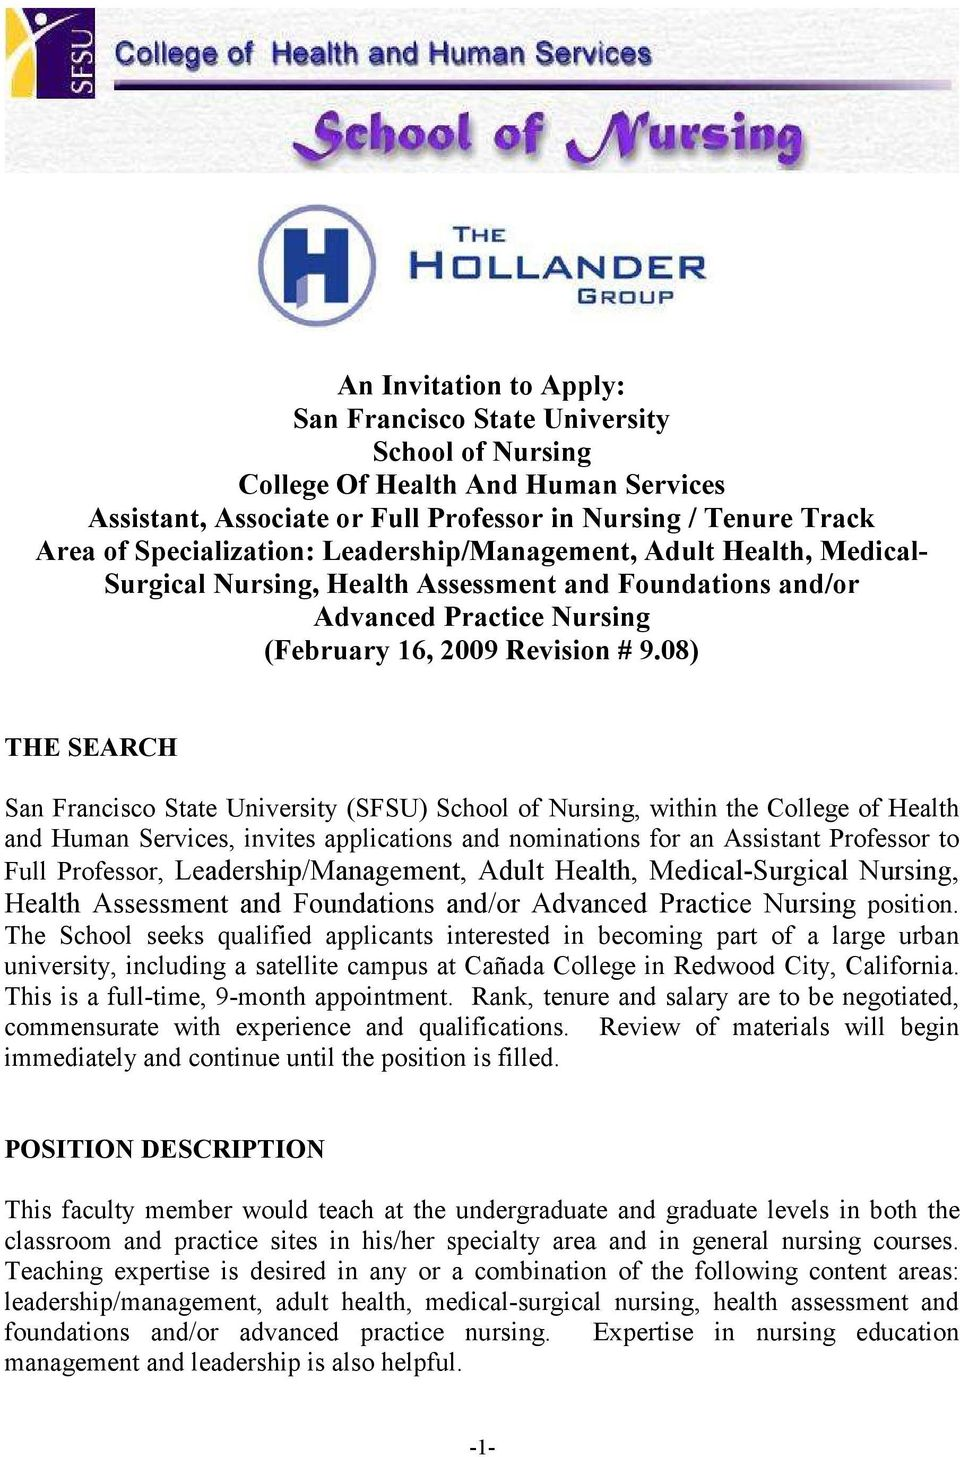 08) THE SEARCH San Francisco State University (SFSU) School of Nursing, within the College of Health and Human Services, invites applications and nominations for an Assistant Professor to Full